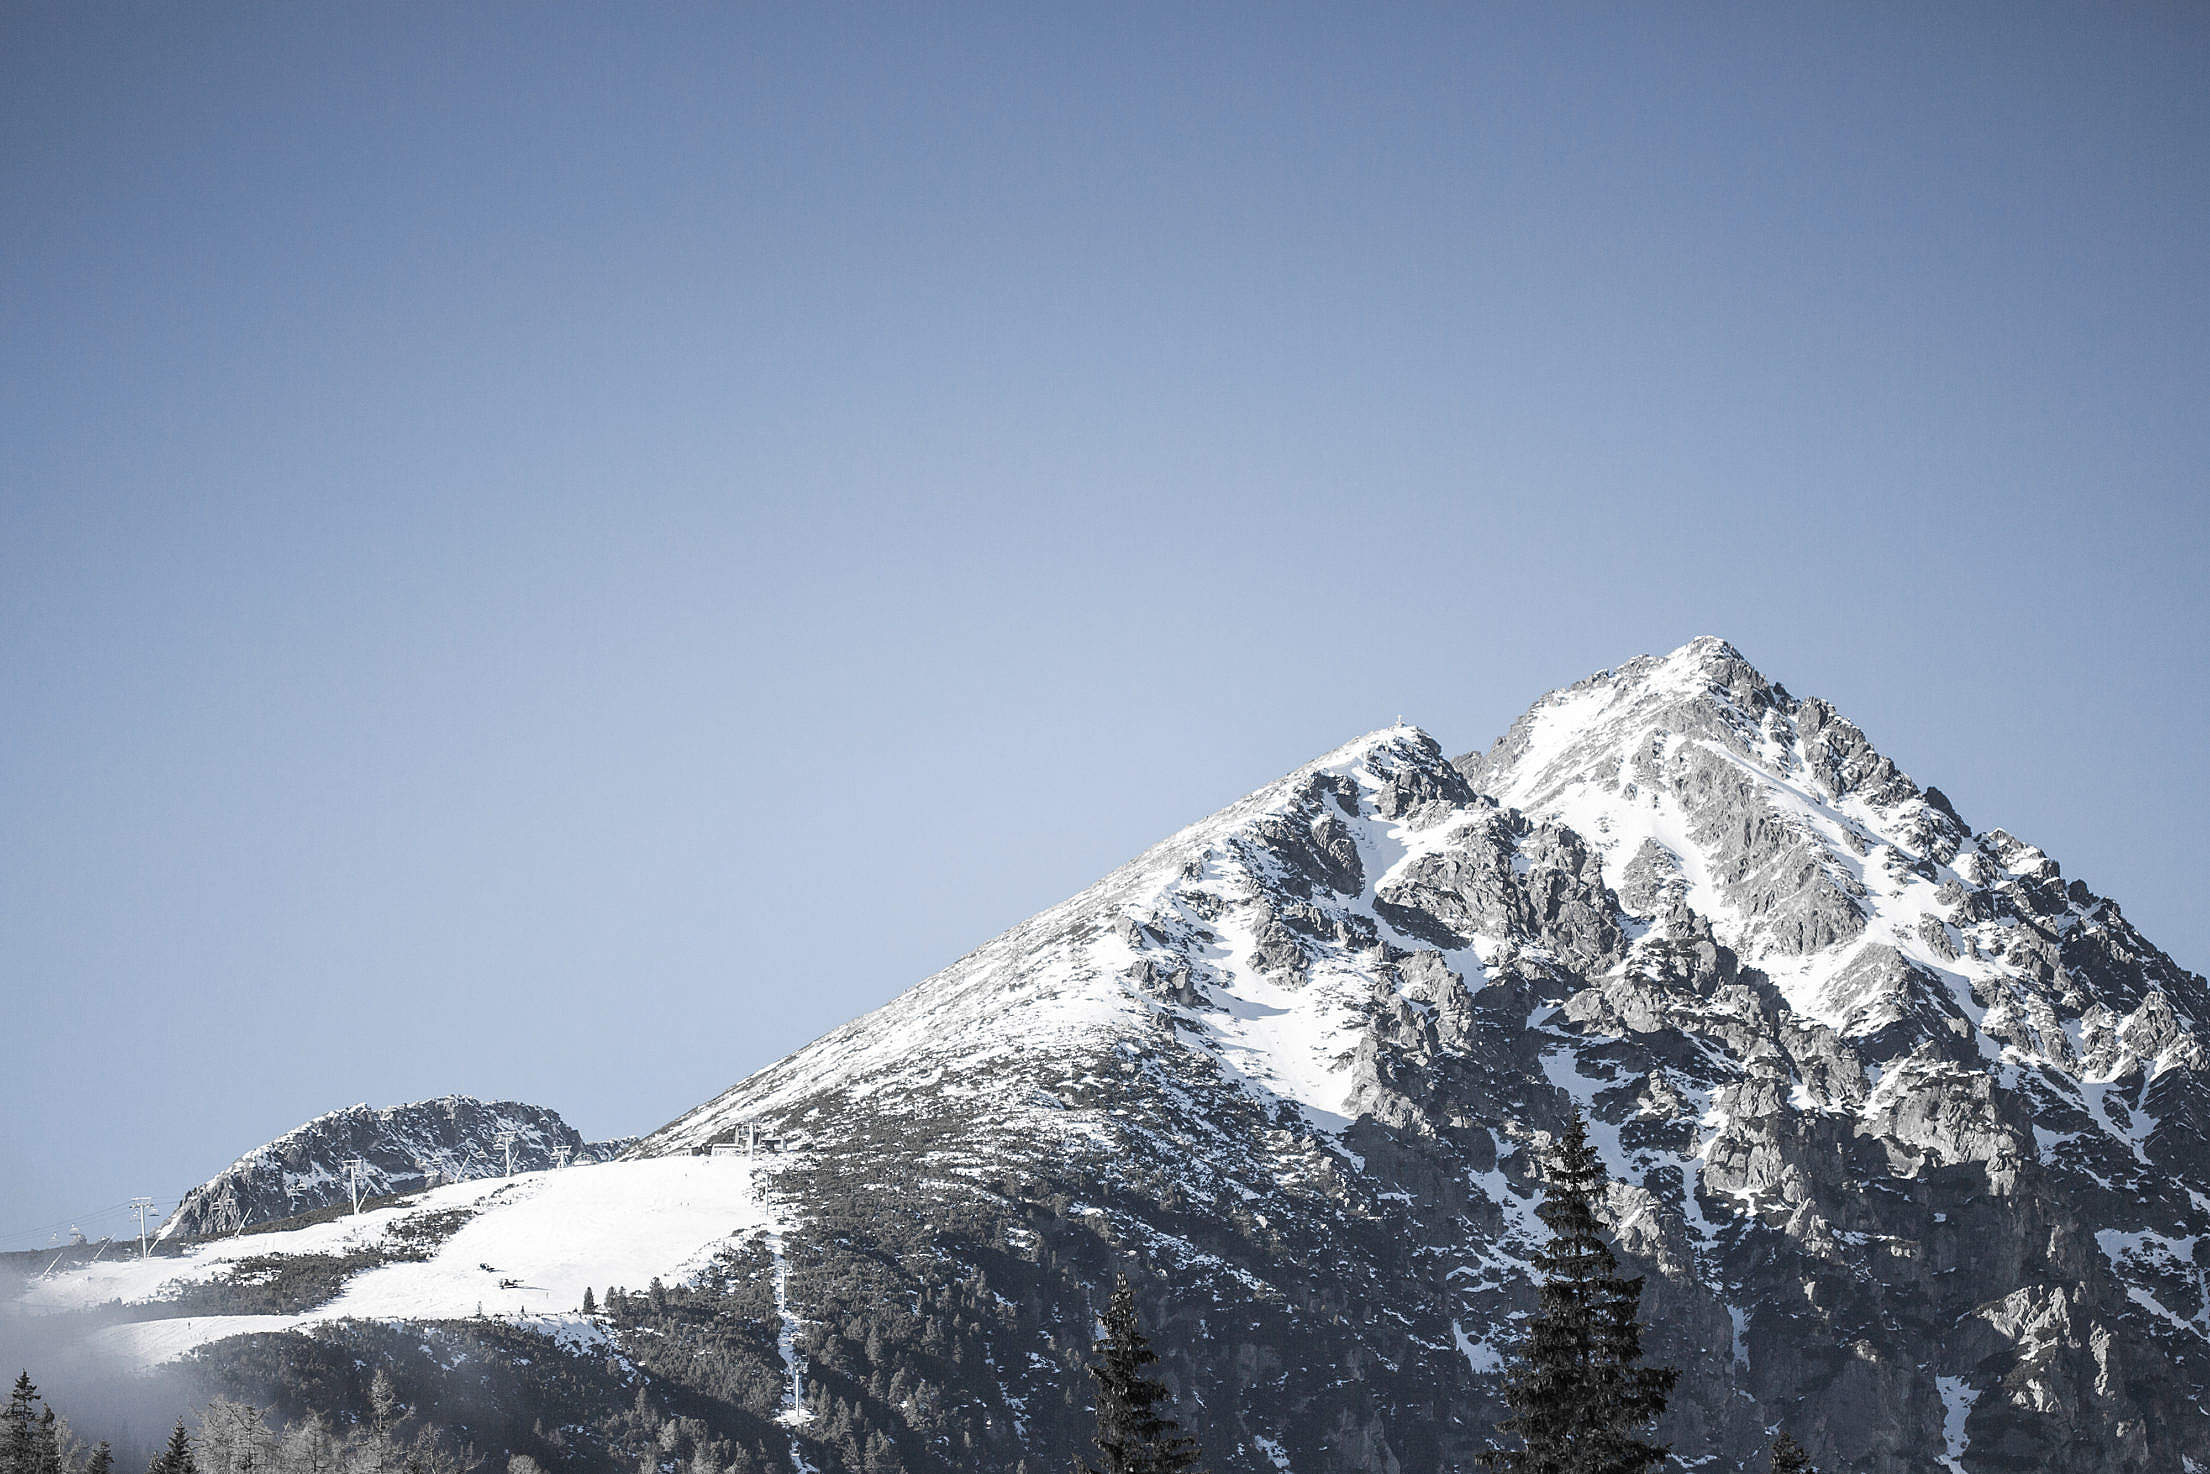 Snowy Mountain with Blue Cloudless Sky Free Stock Photo